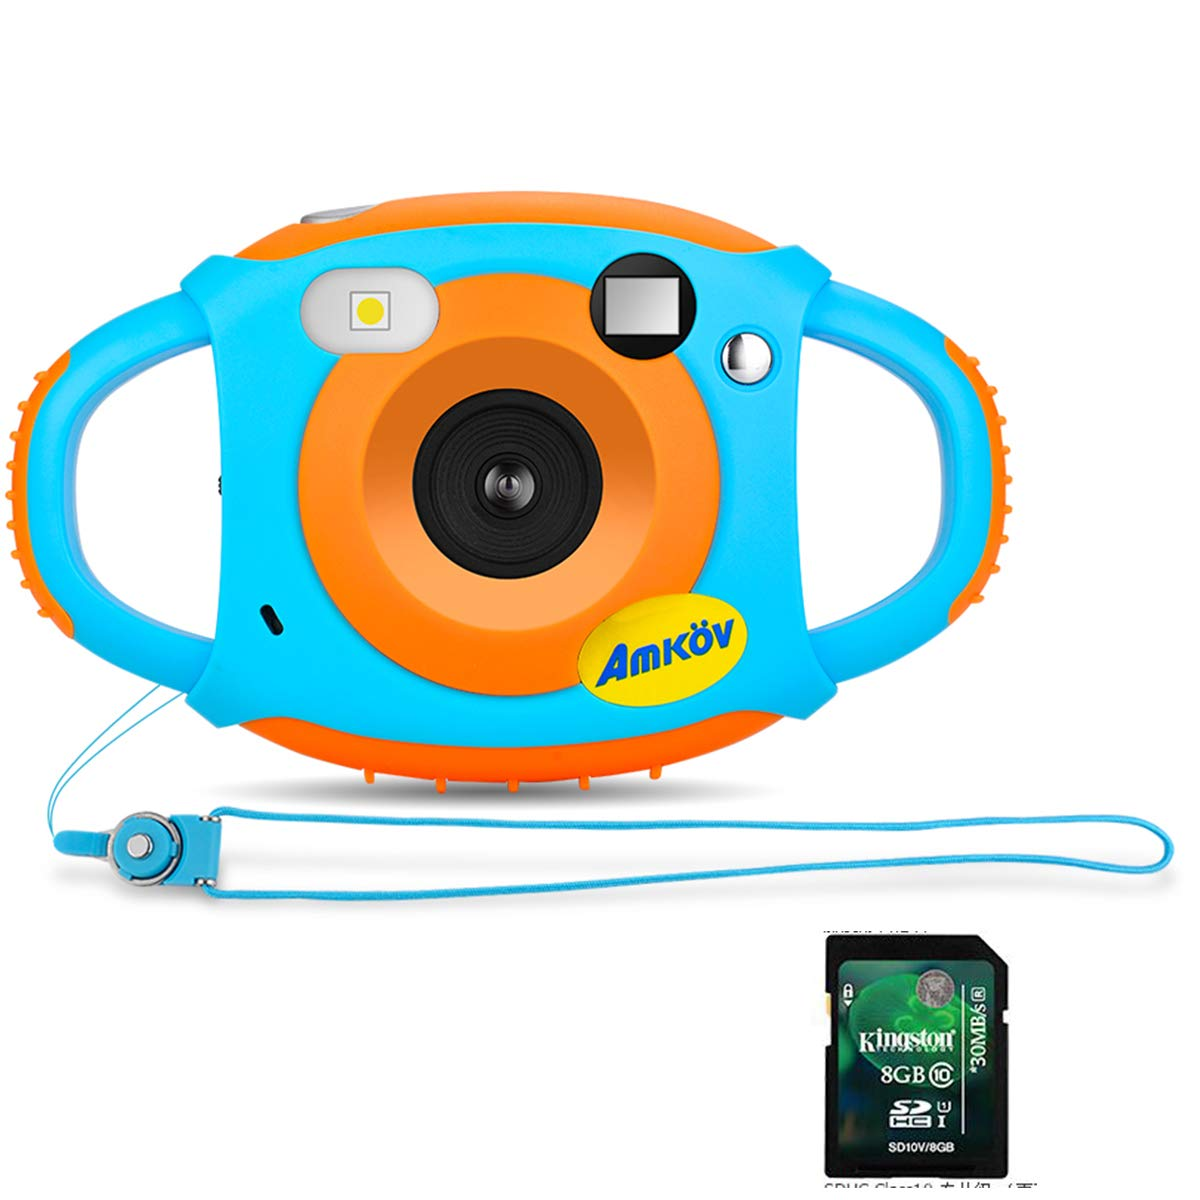 Amkov Kids Camera with Memory Card Digital Camera for Kids Children Creative Mini Video Camera Hd 5Mp 1.77 Inch TFT Display Recording Camera AMKFP005